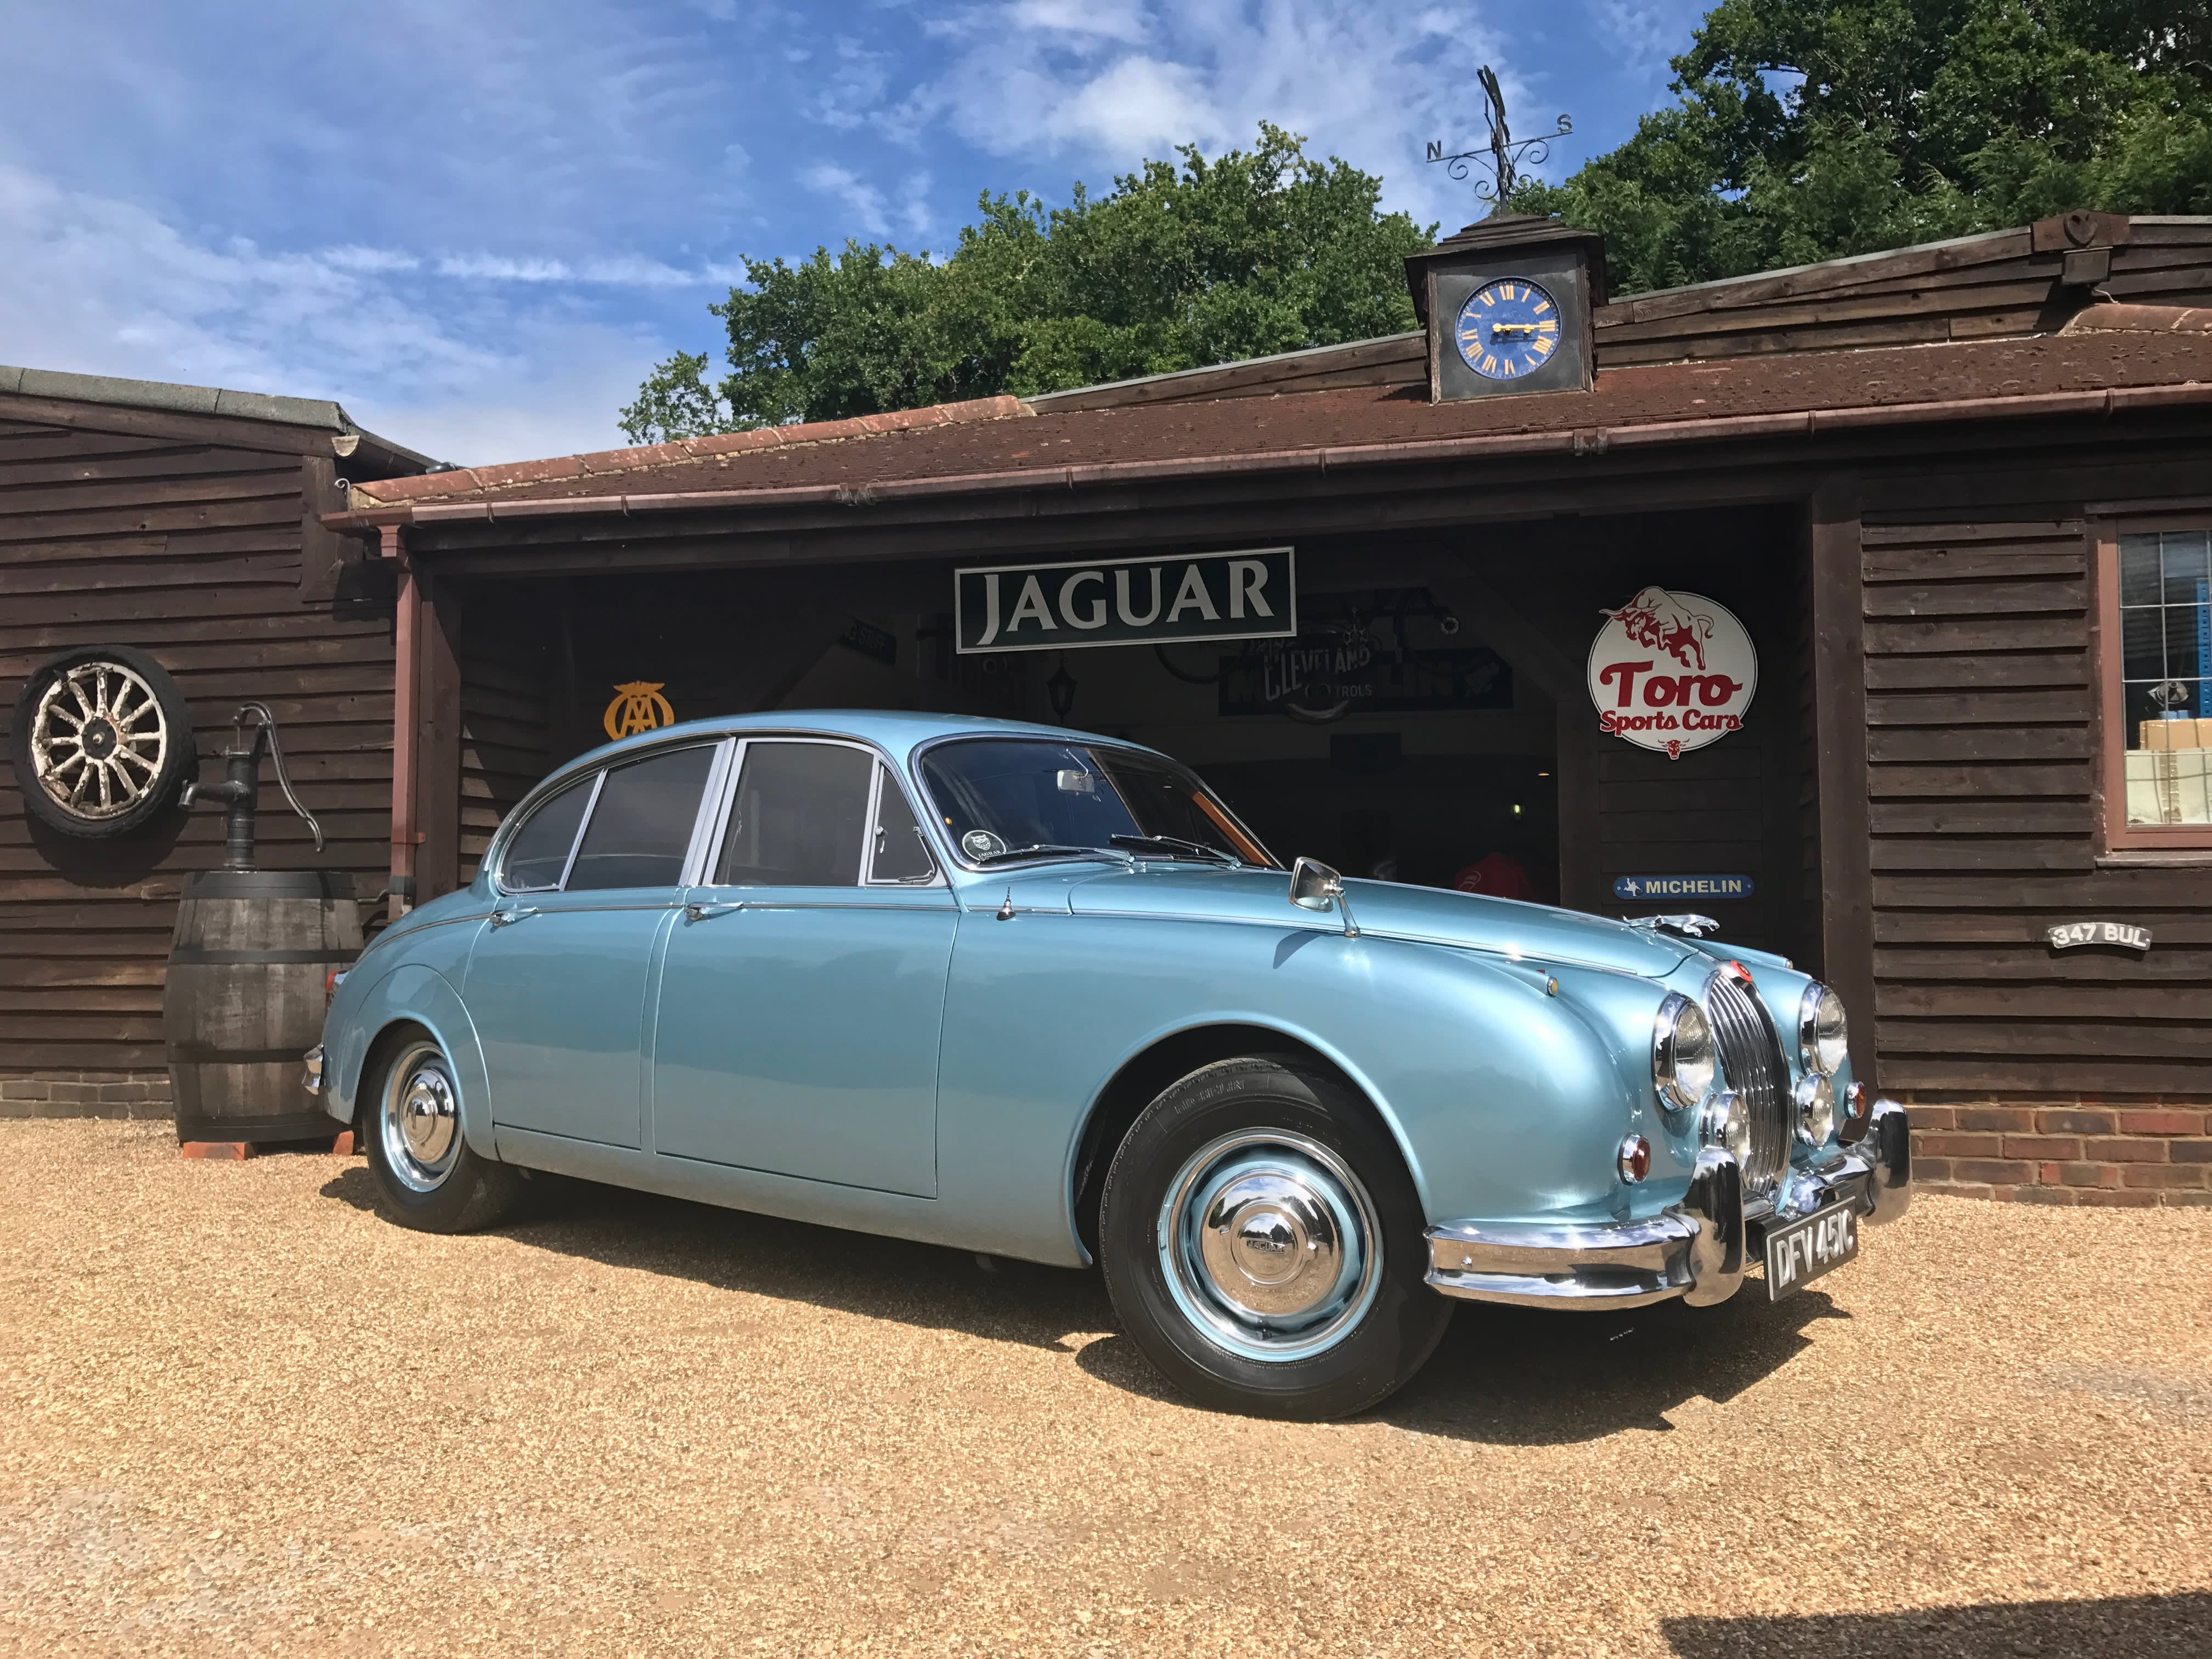 saloon for litre jaguar sale paris mark the bonhams wiki file